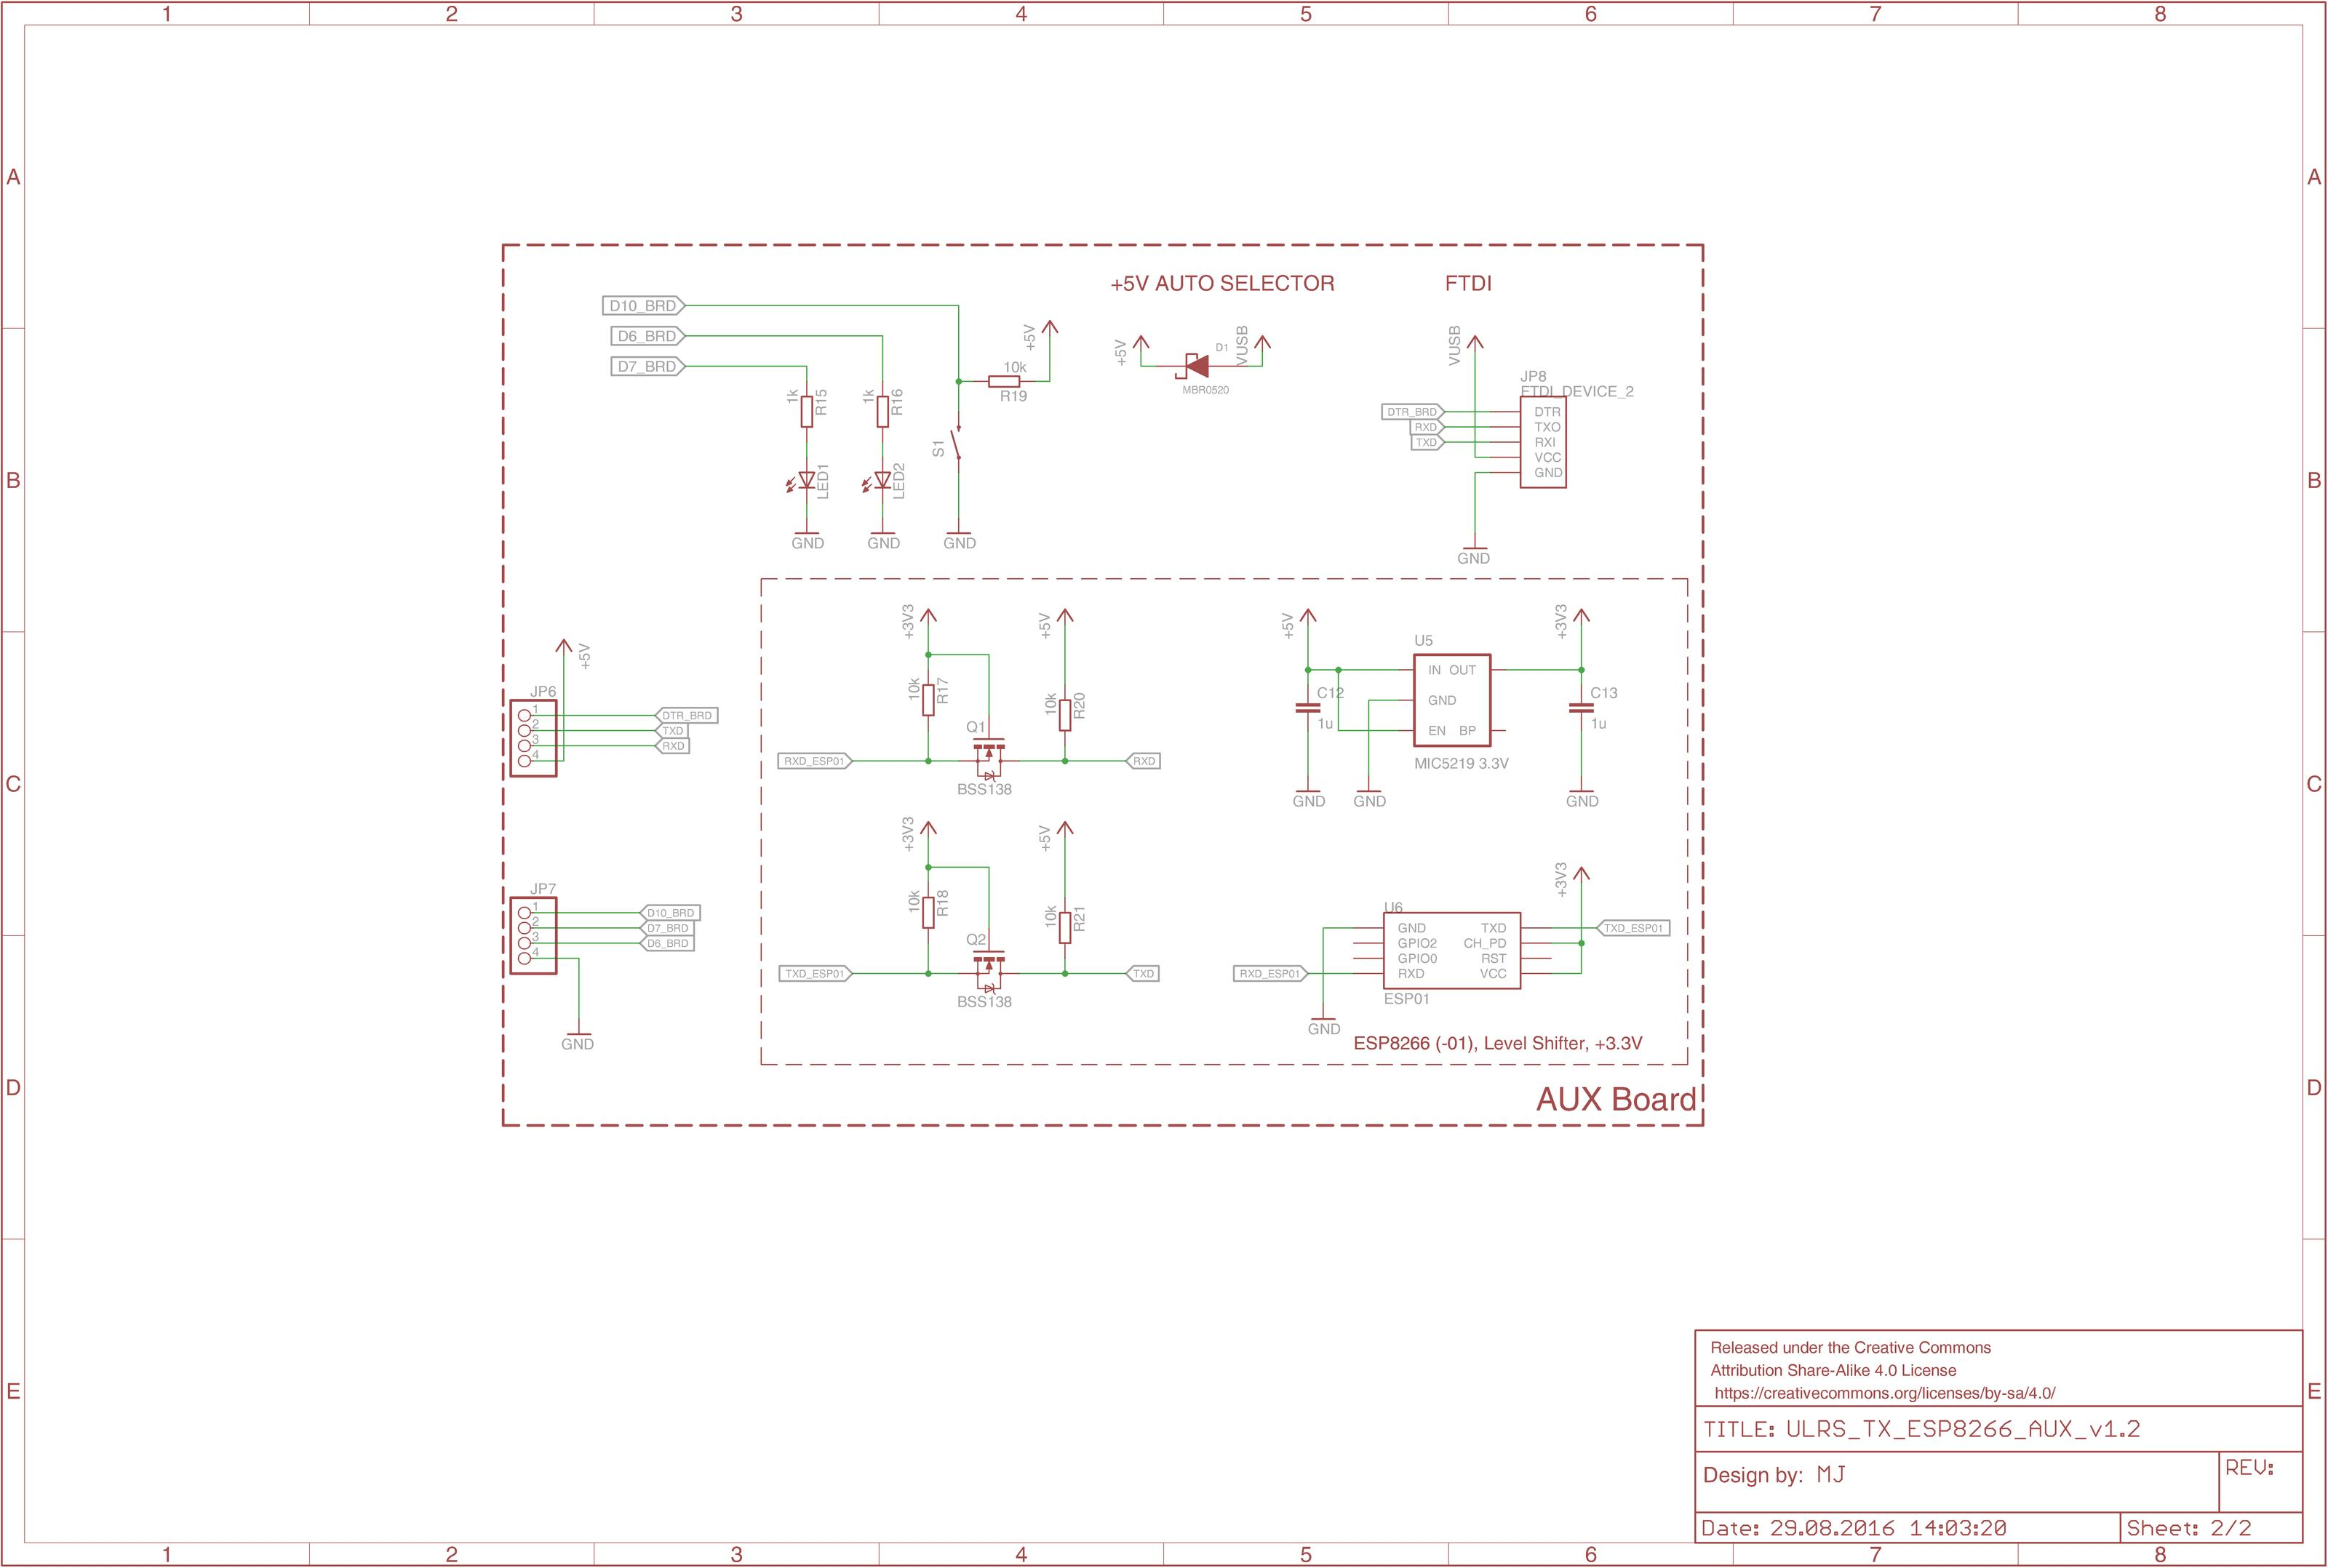 Ultimate Lrs Mini It Luxembourg Schematics And Pcbs Link To The Schematic Pcb Files